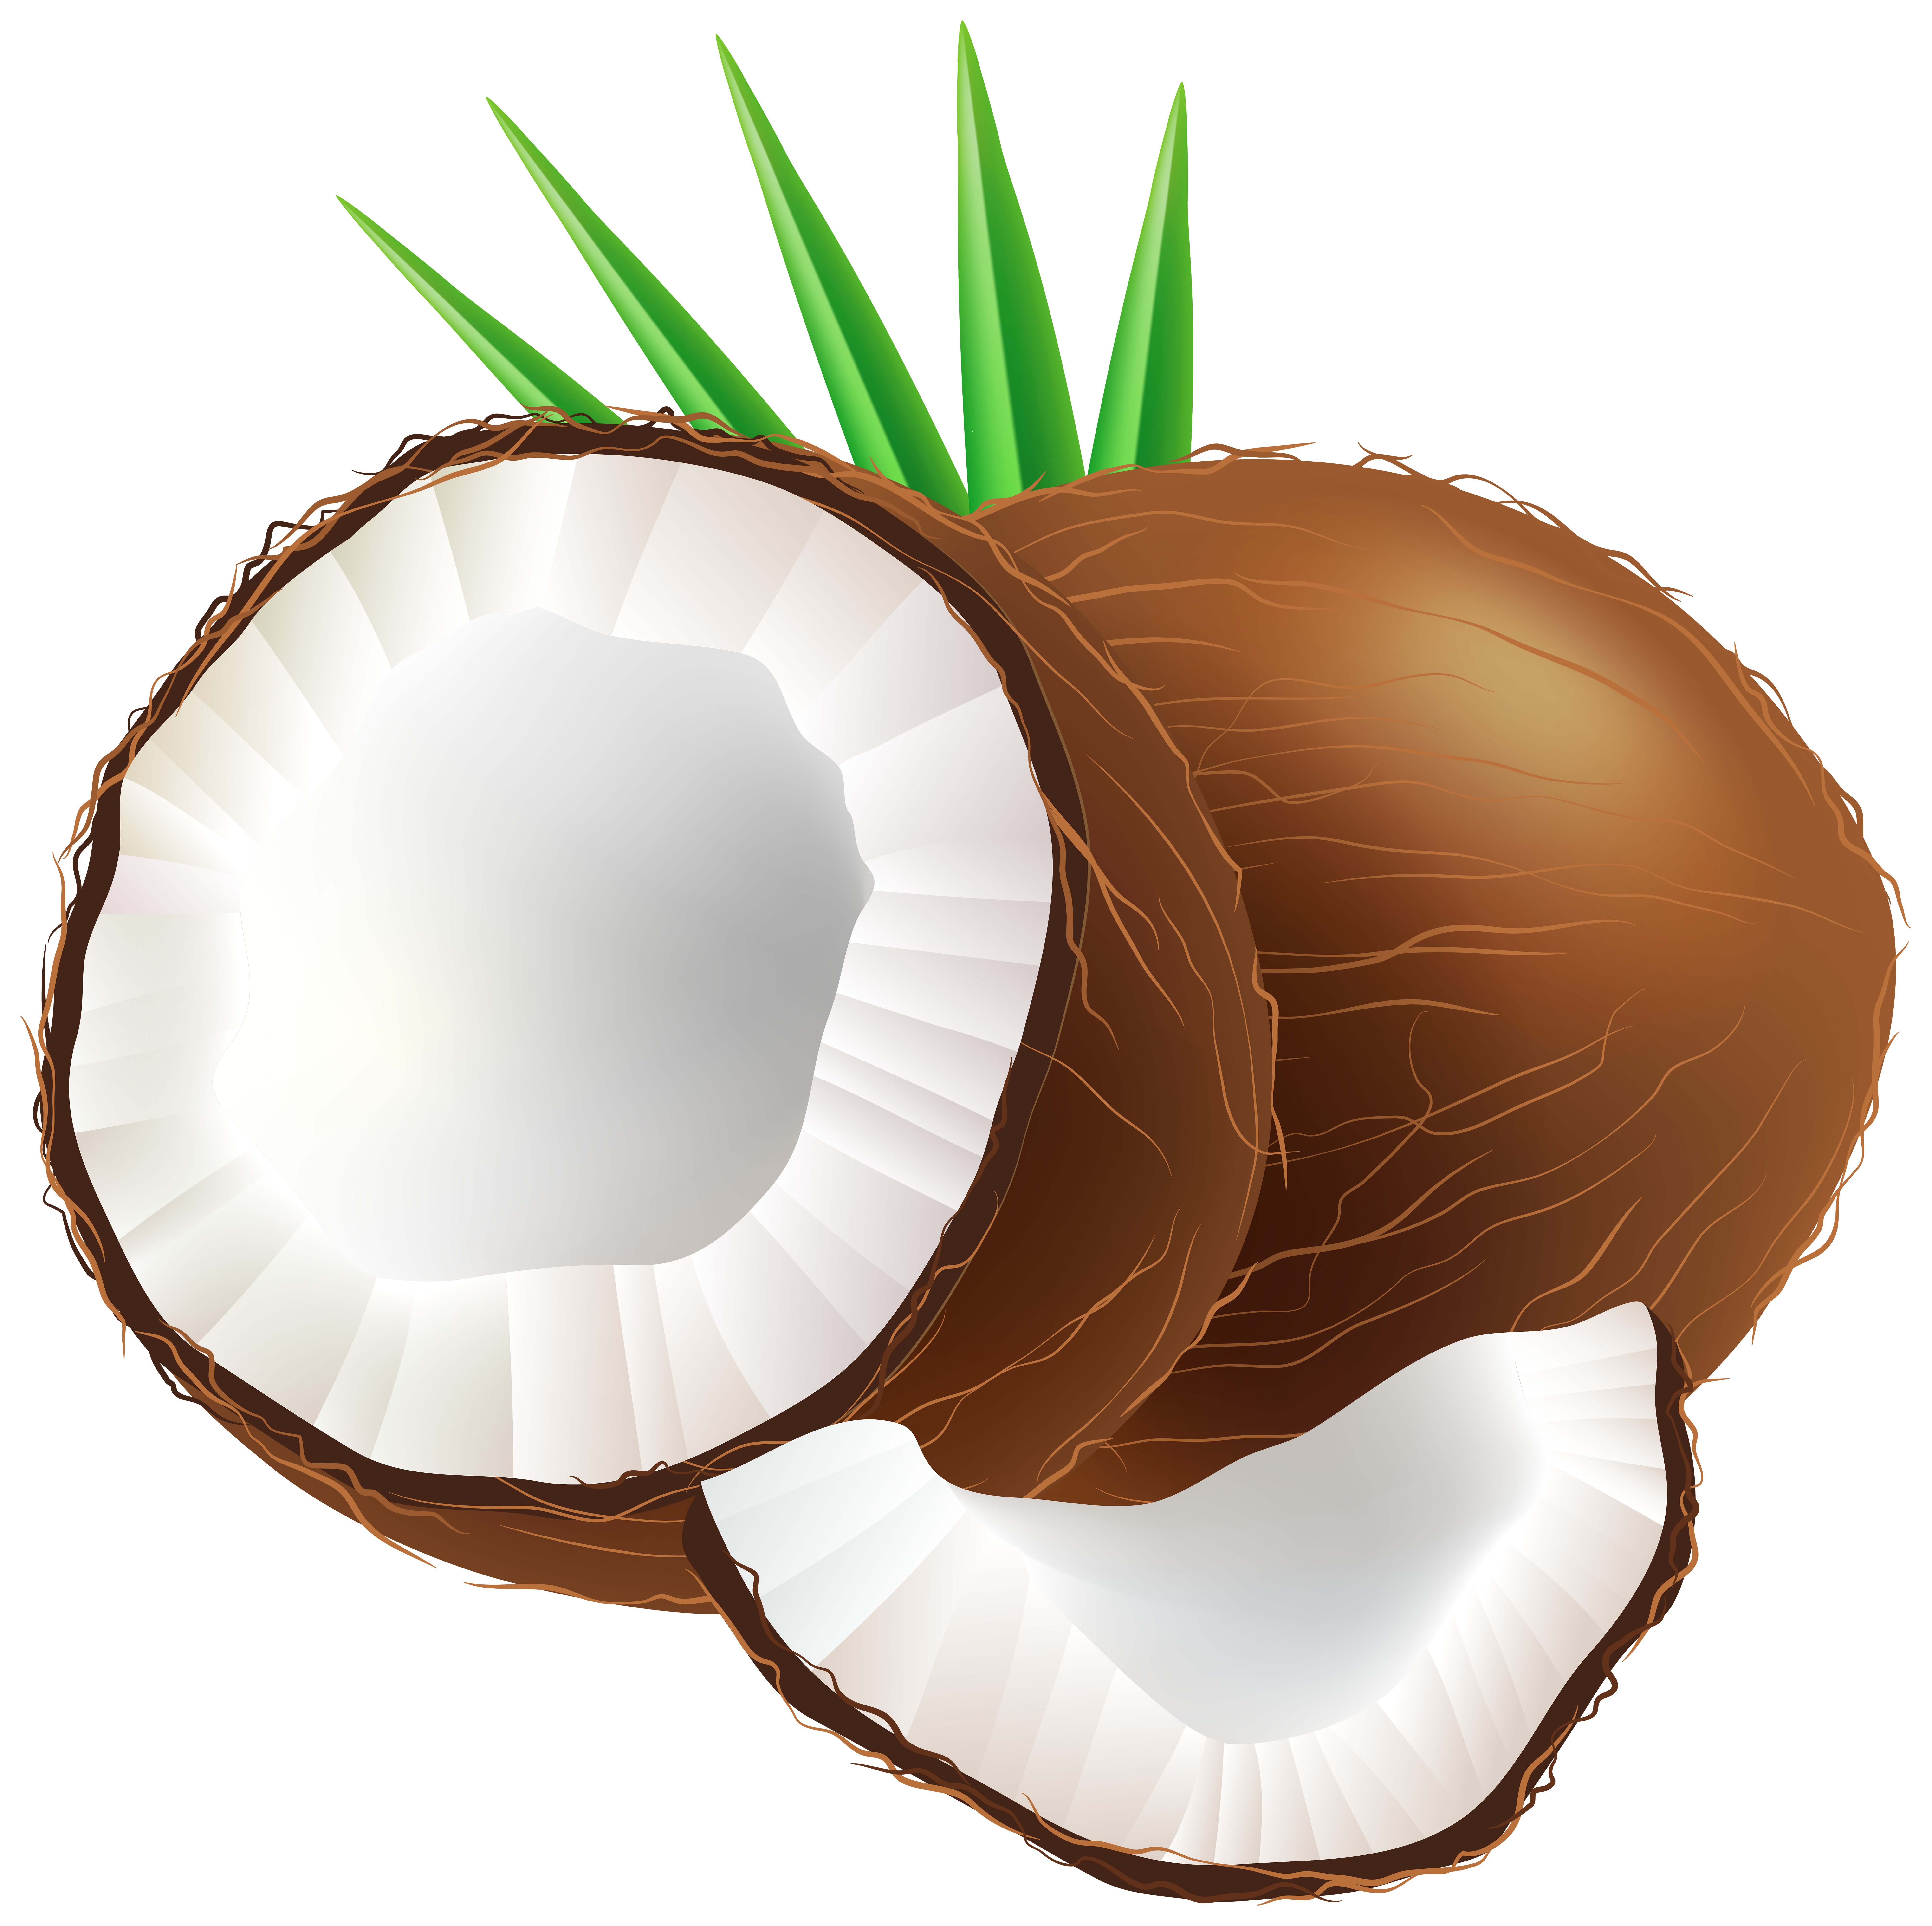 Coconut clipart image jpg freeuse stock Coconut PNG Clip Art - Best WEB Clipart jpg freeuse stock